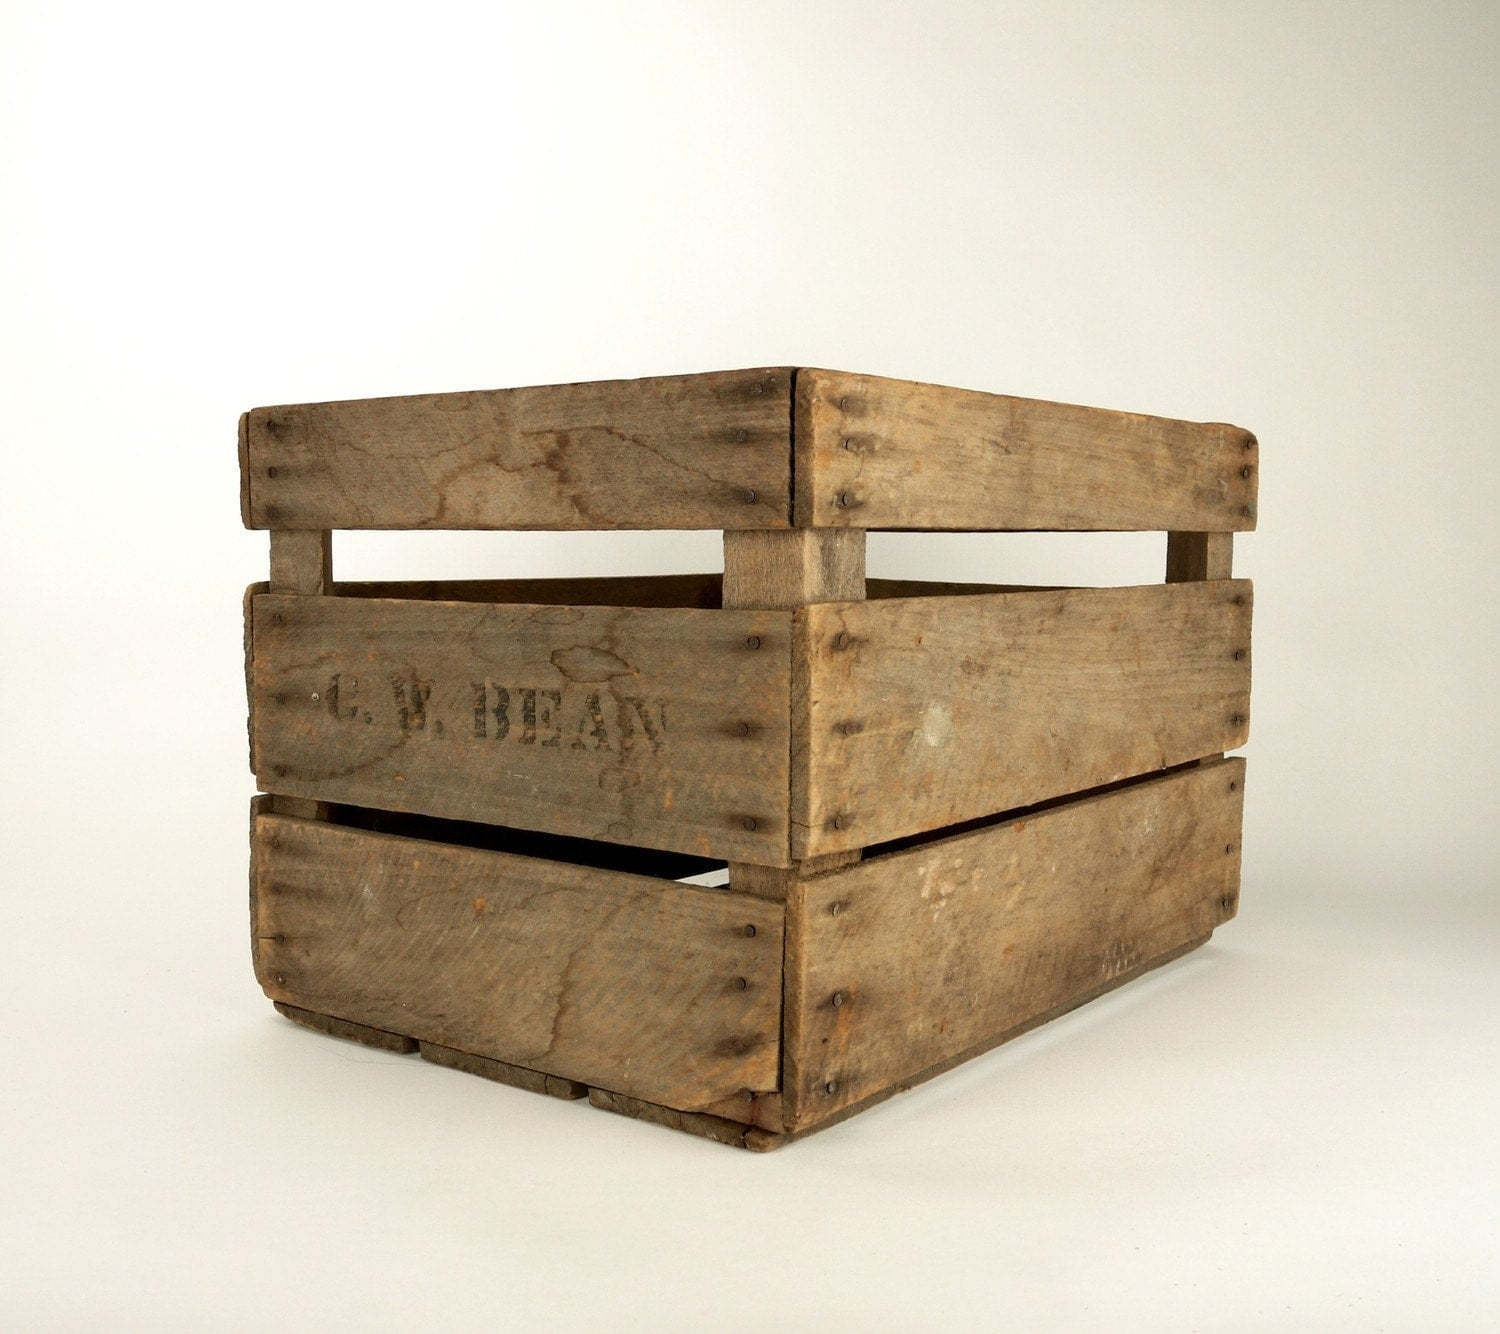 Vintage wooden c w bean orchard apple fruit field crate box for Wooden fruit crates